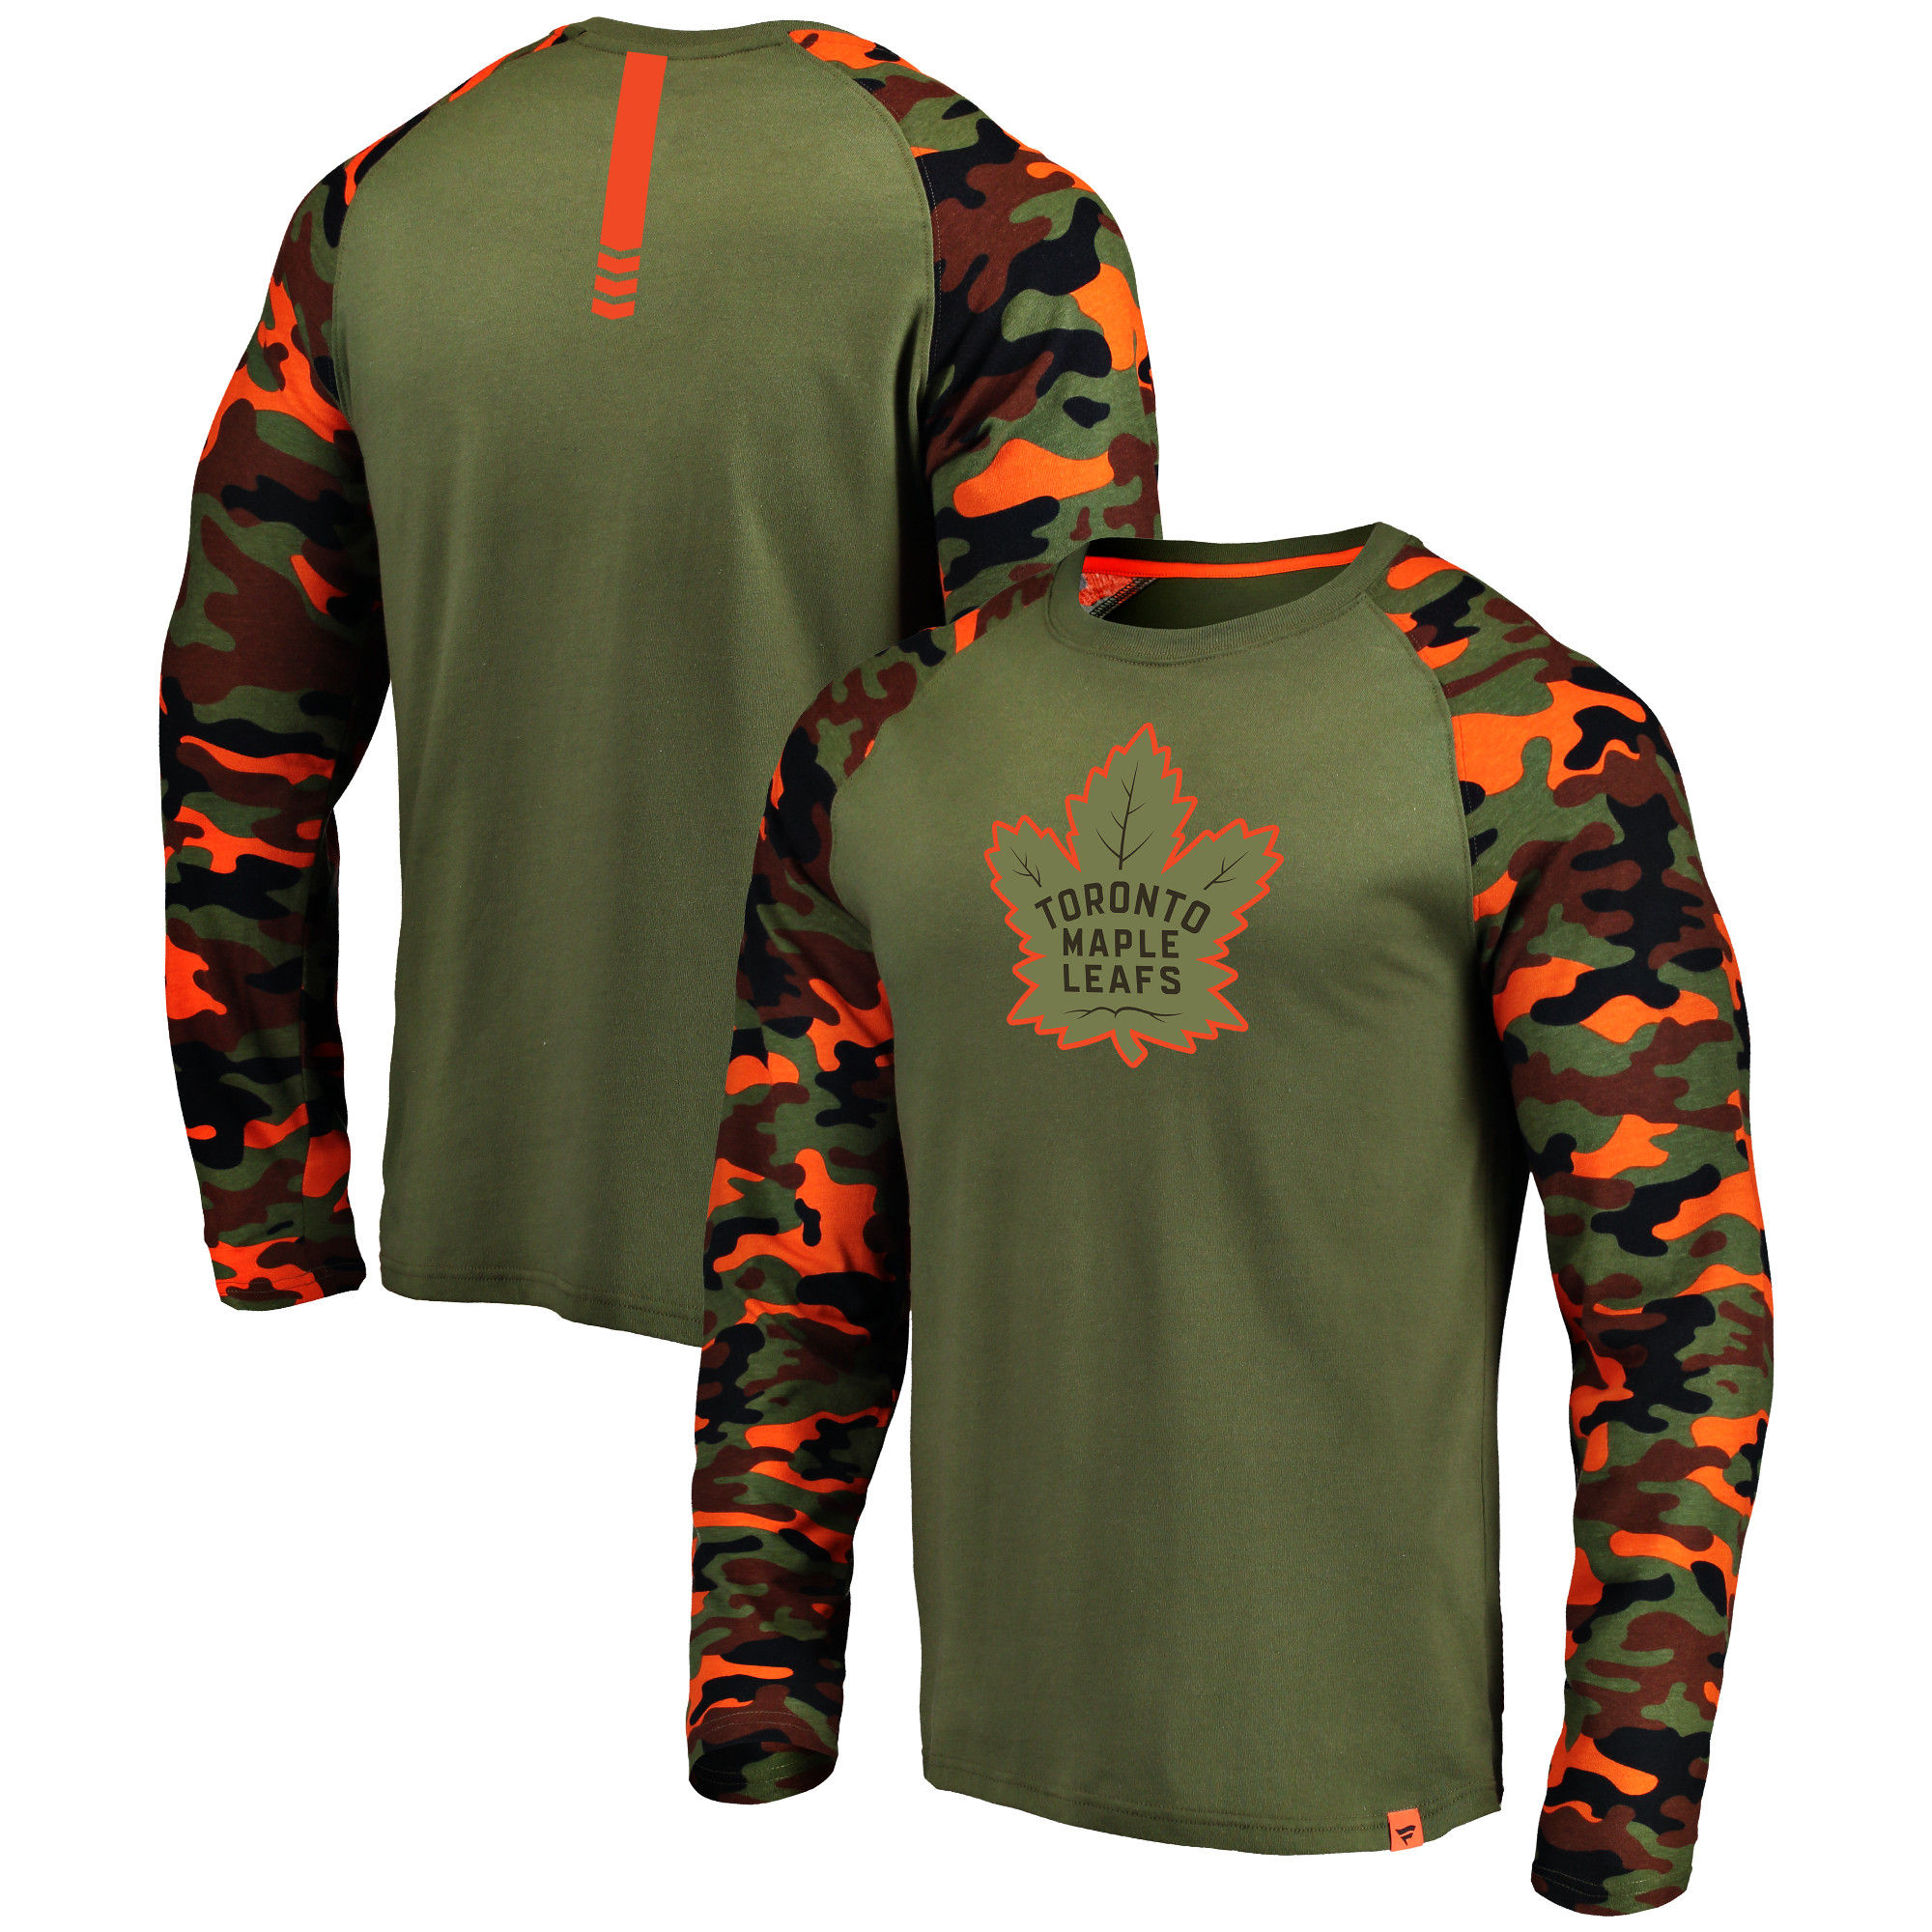 Toronto Maple Leafs Fanatics Branded Olive/Camo Recon Long Sleeve Raglan T-Shirt